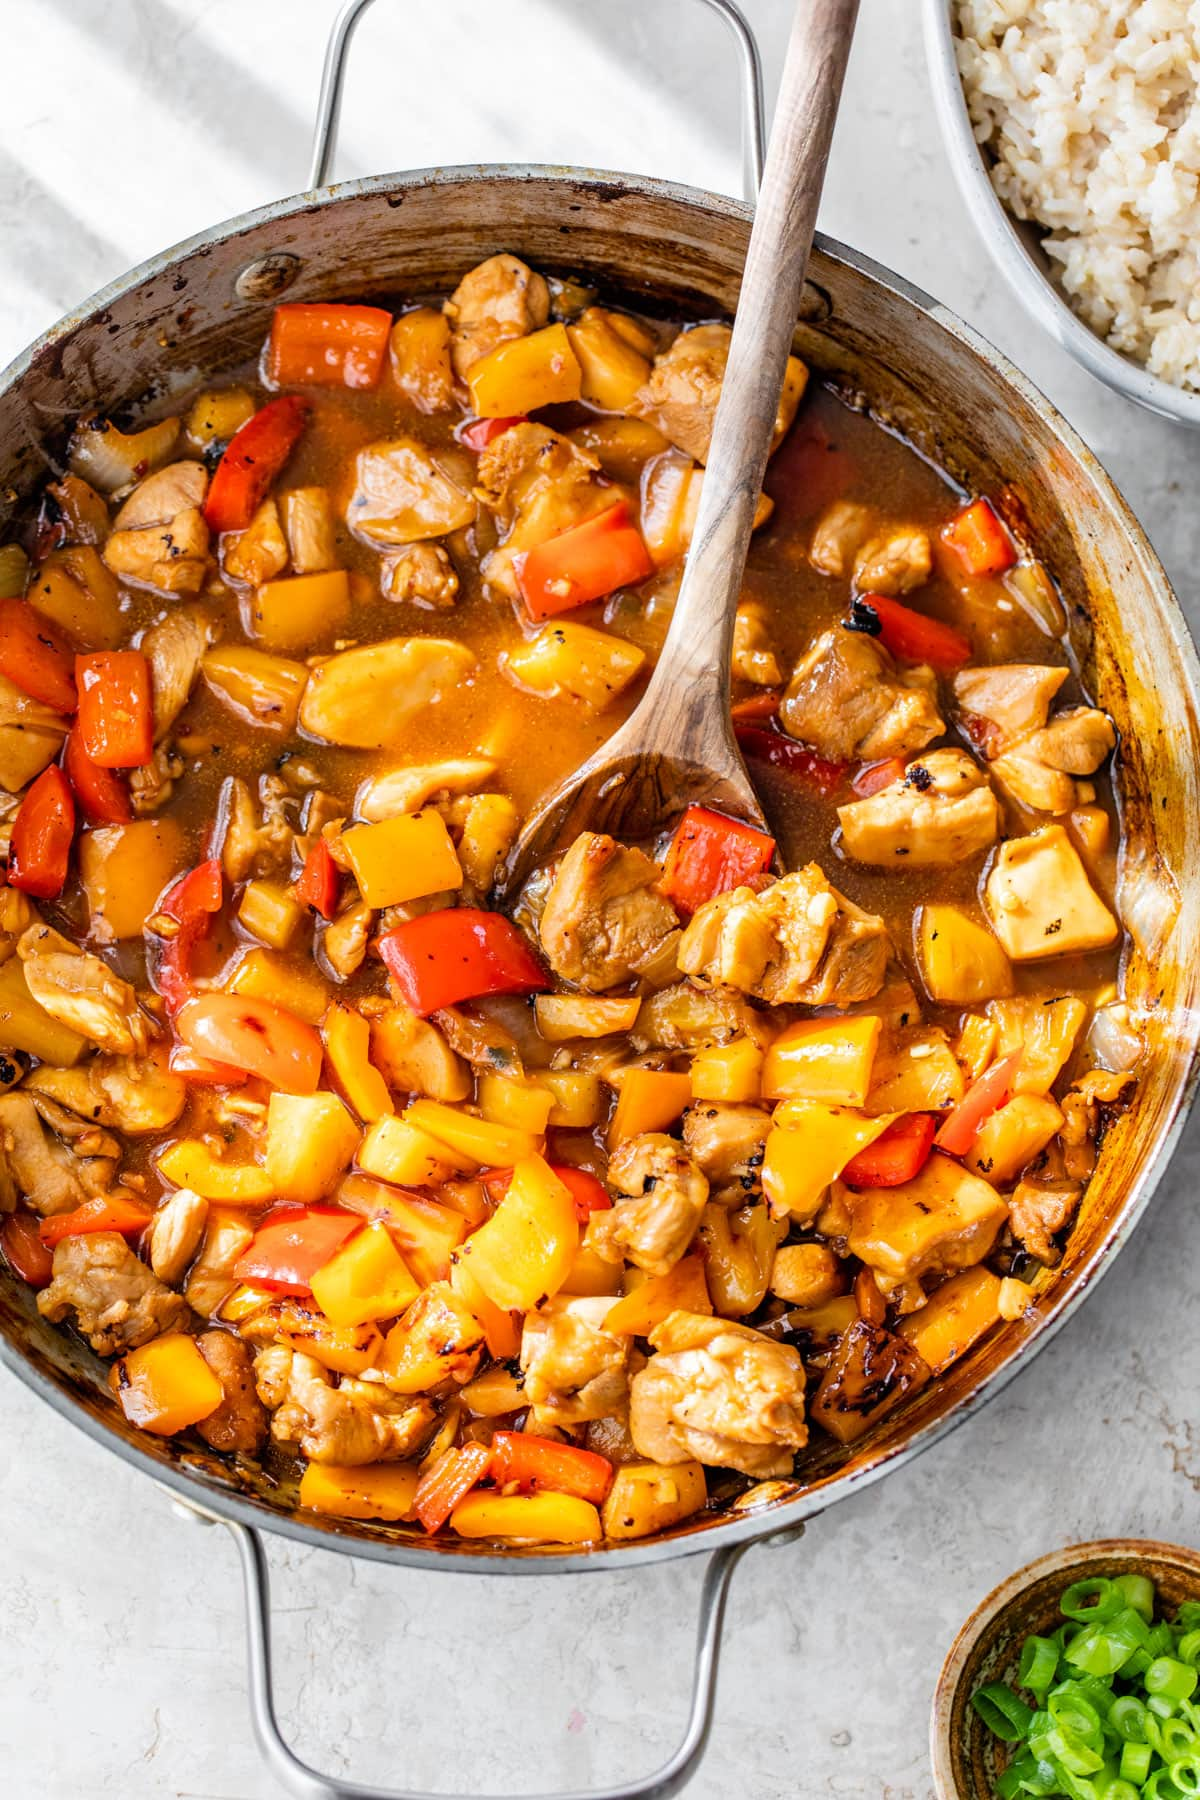 Hot and Sour Noodle Stir Fry with Peanut Chicken. A healthy 30-minute meal packed with flavor!